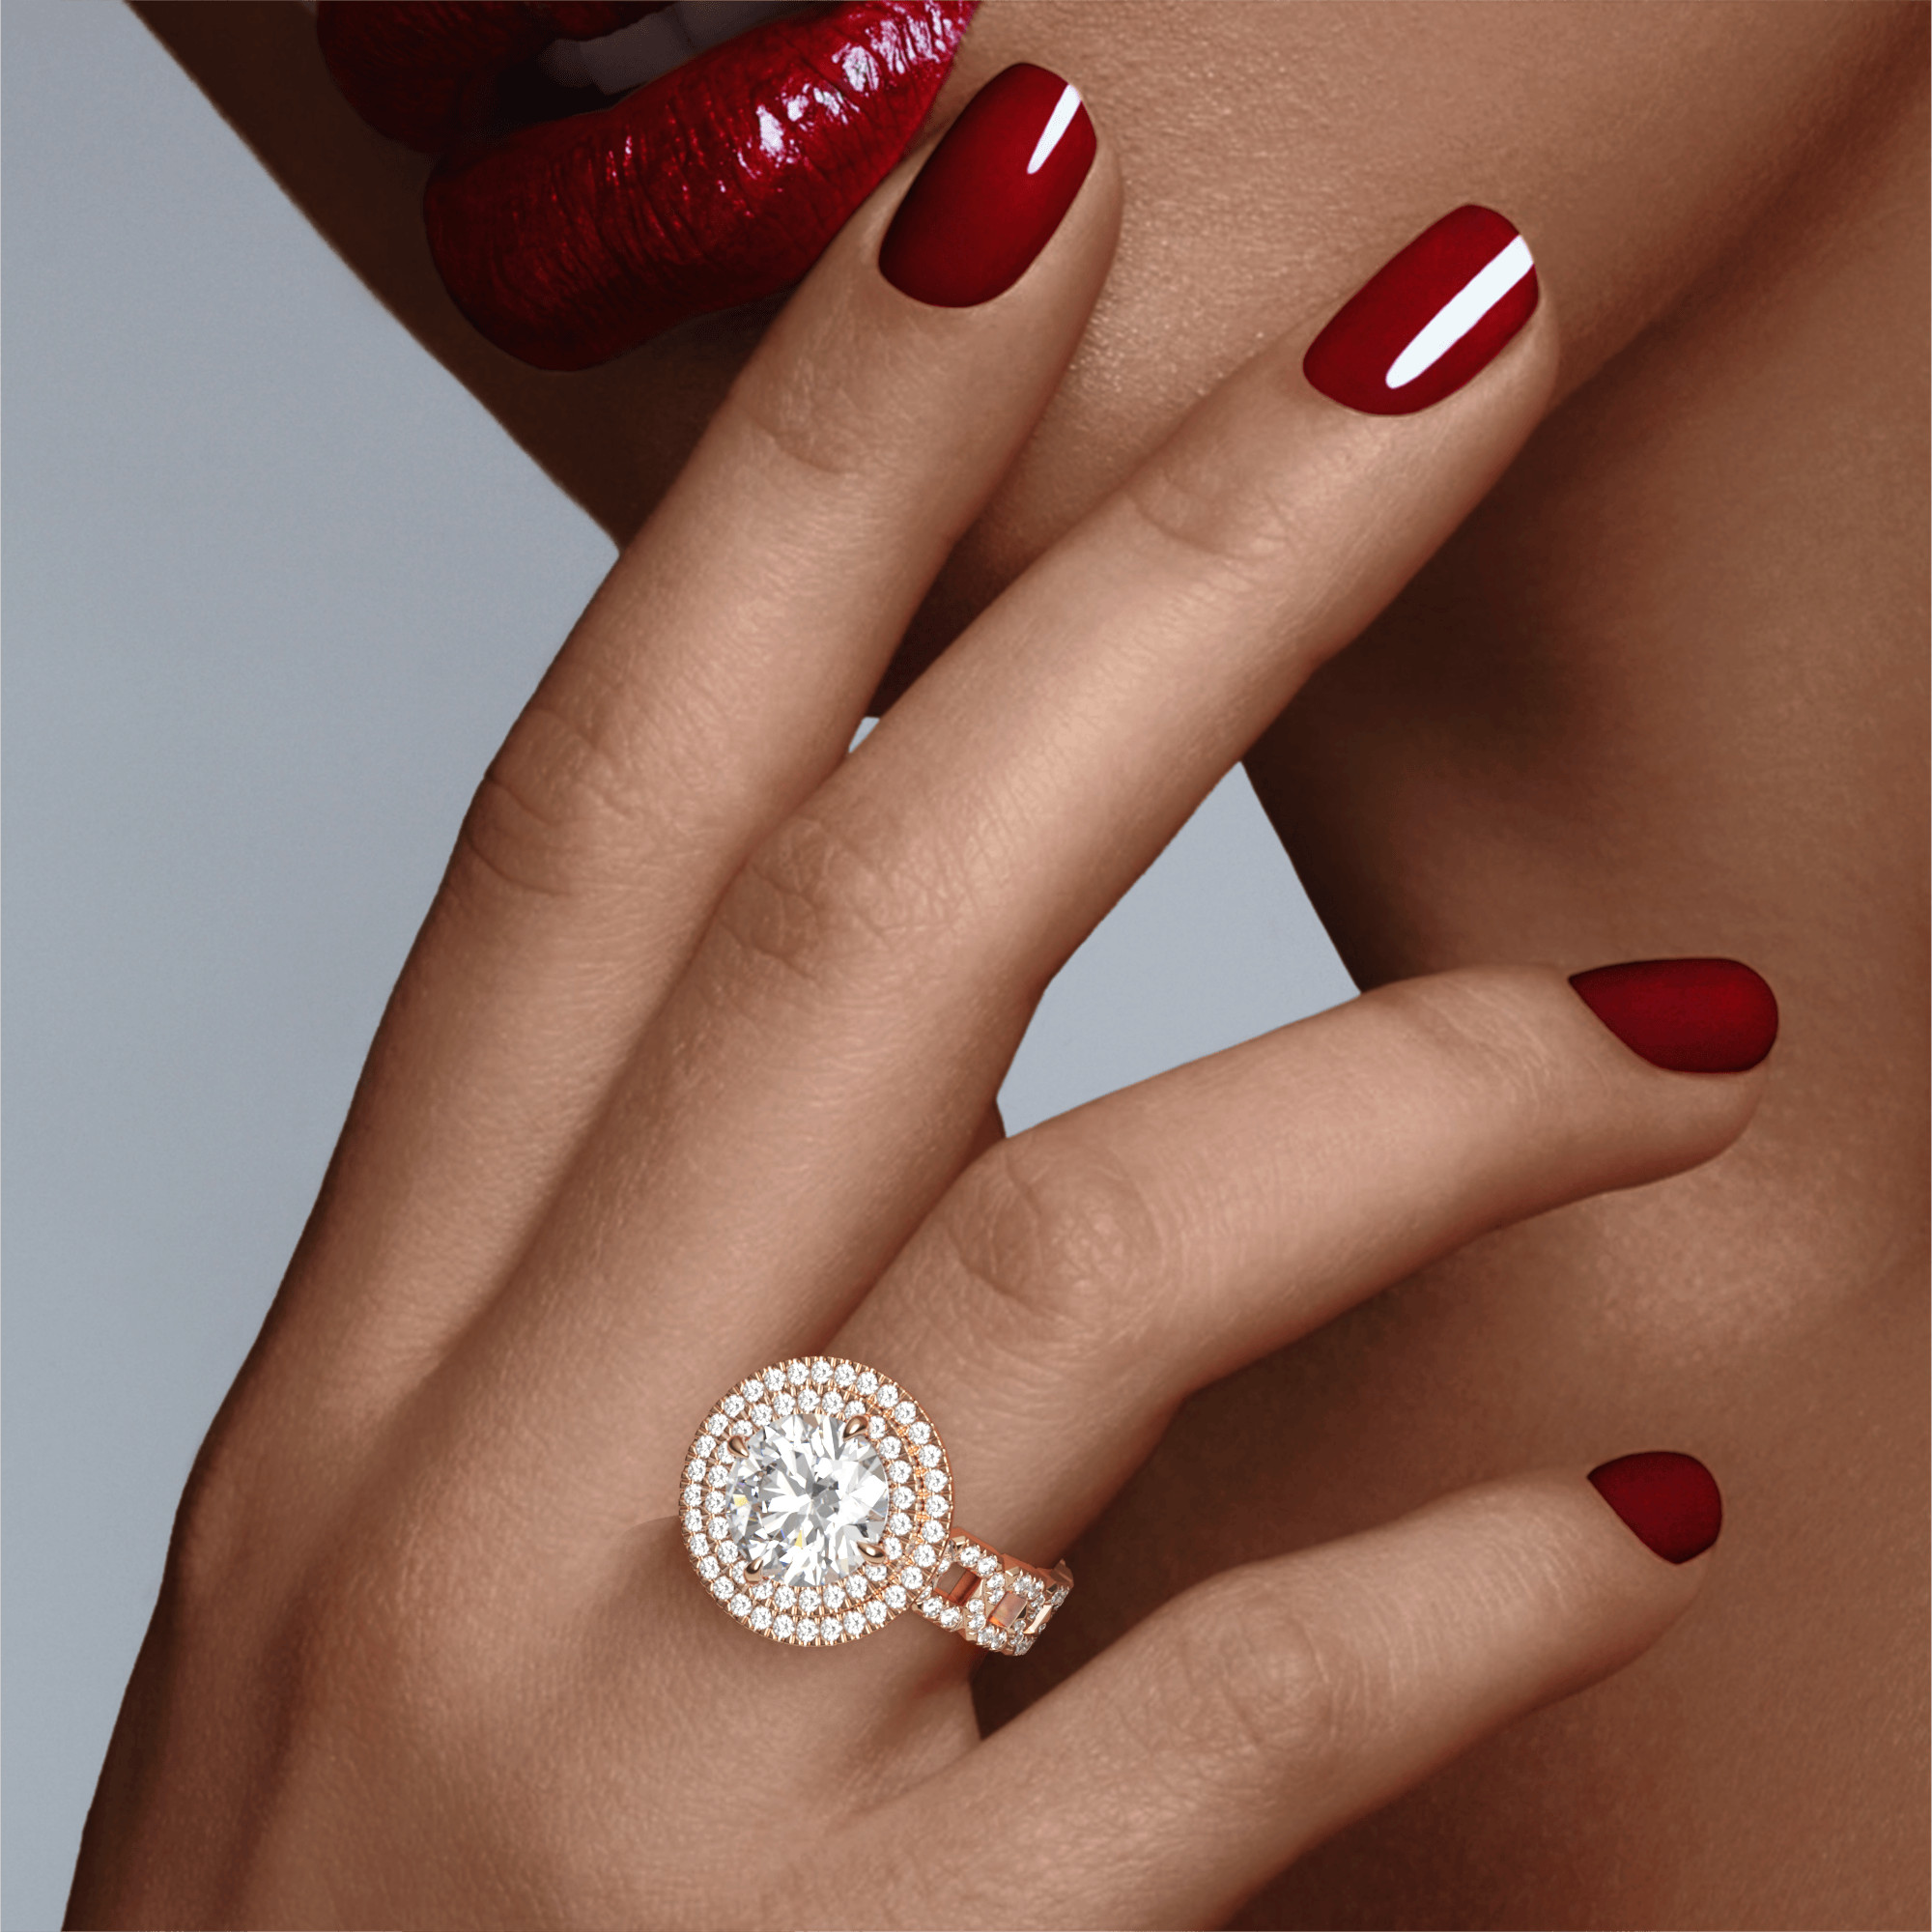 ROUND CUT, DOUBLE HALO SETTING, 16 PAVE LINKS, 18K ROSE GOLD